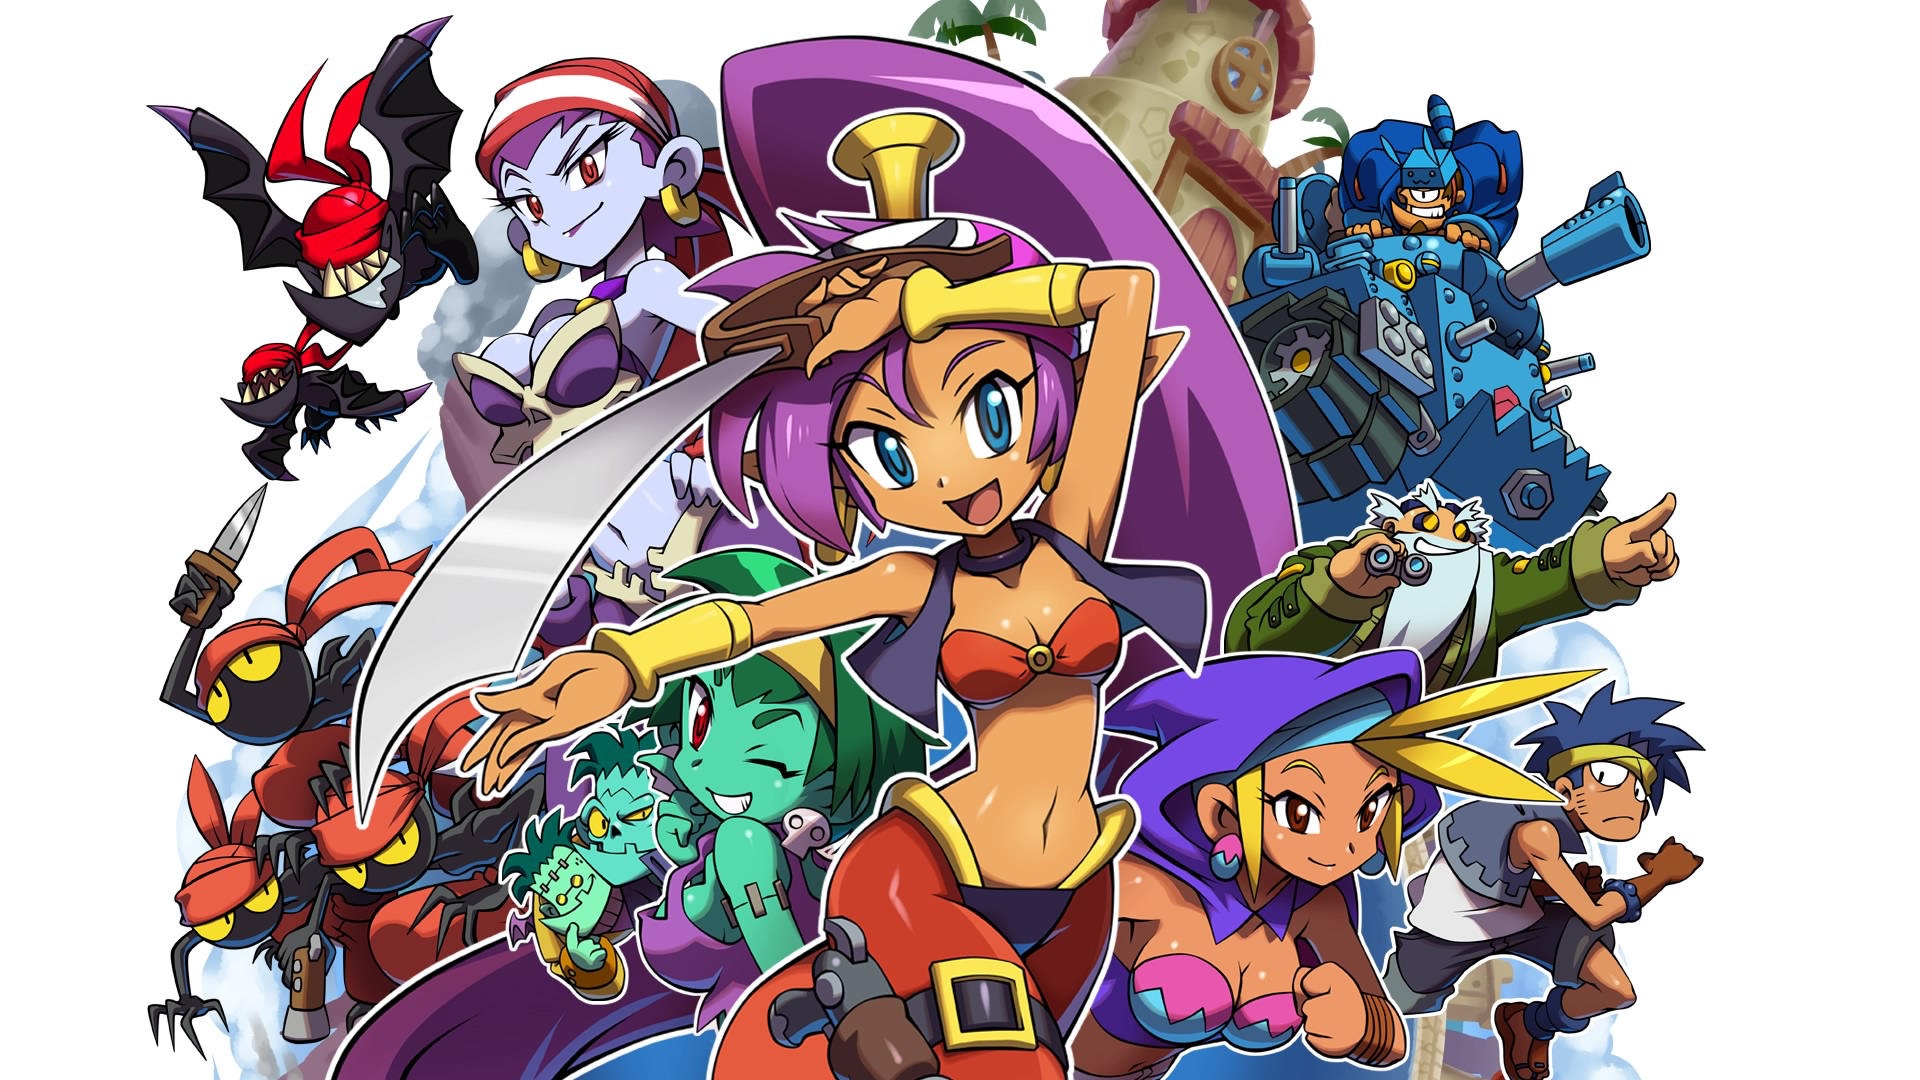 Shantae and the Pirate's curse wallpaper 1 by Fu-reiji